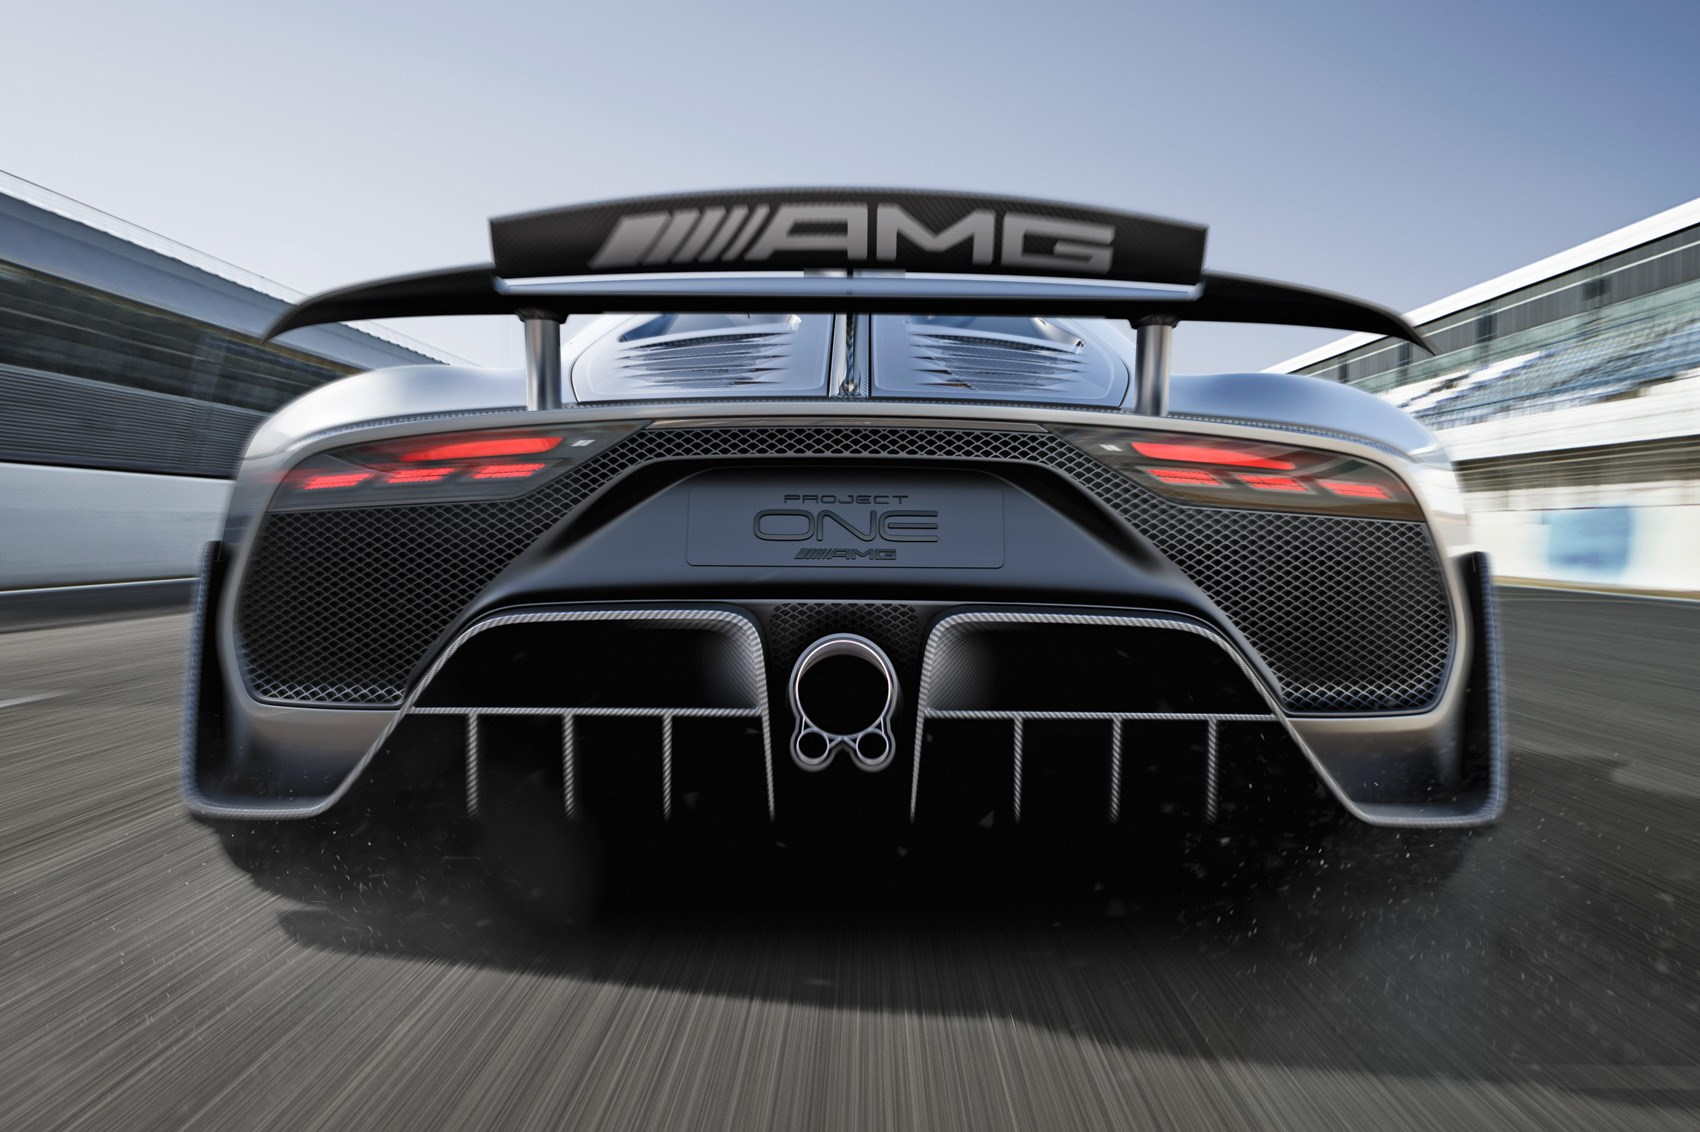 Mercedes-AMG One: new name for F1 hypercar confirmed | CAR Magazine